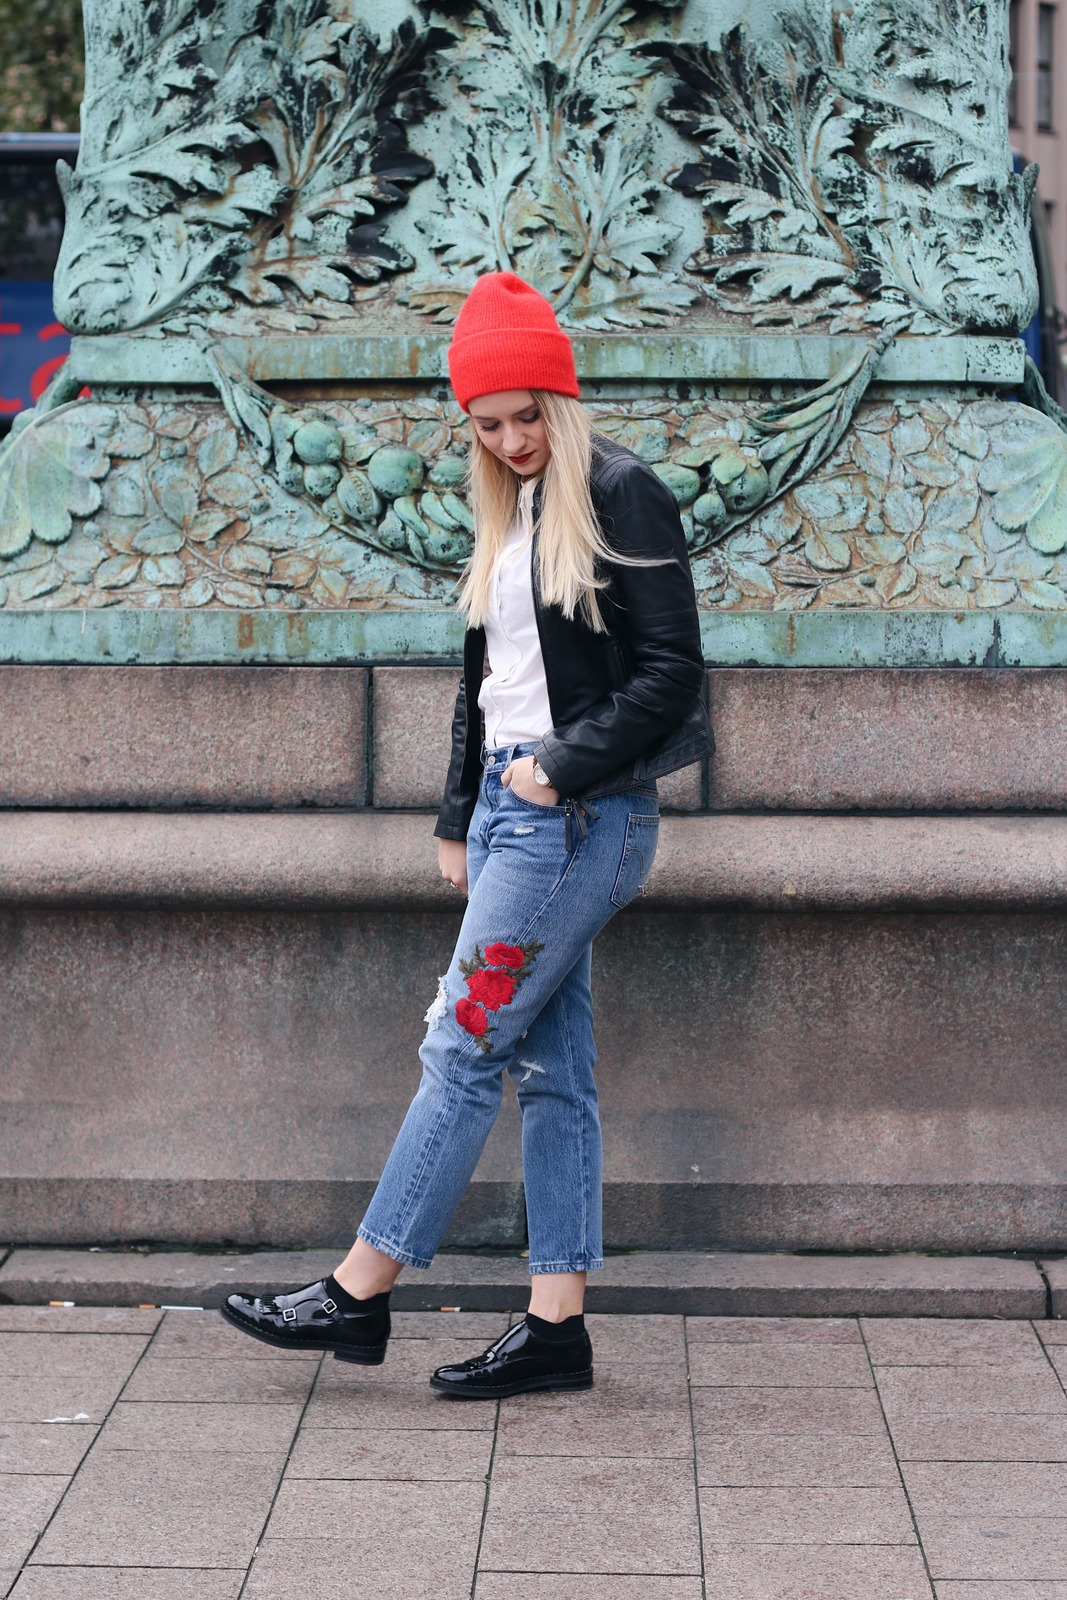 Streetstyle 1 Looks Piece 2 Lederjacke Beanie Rote Outfit ZOOSXqwx